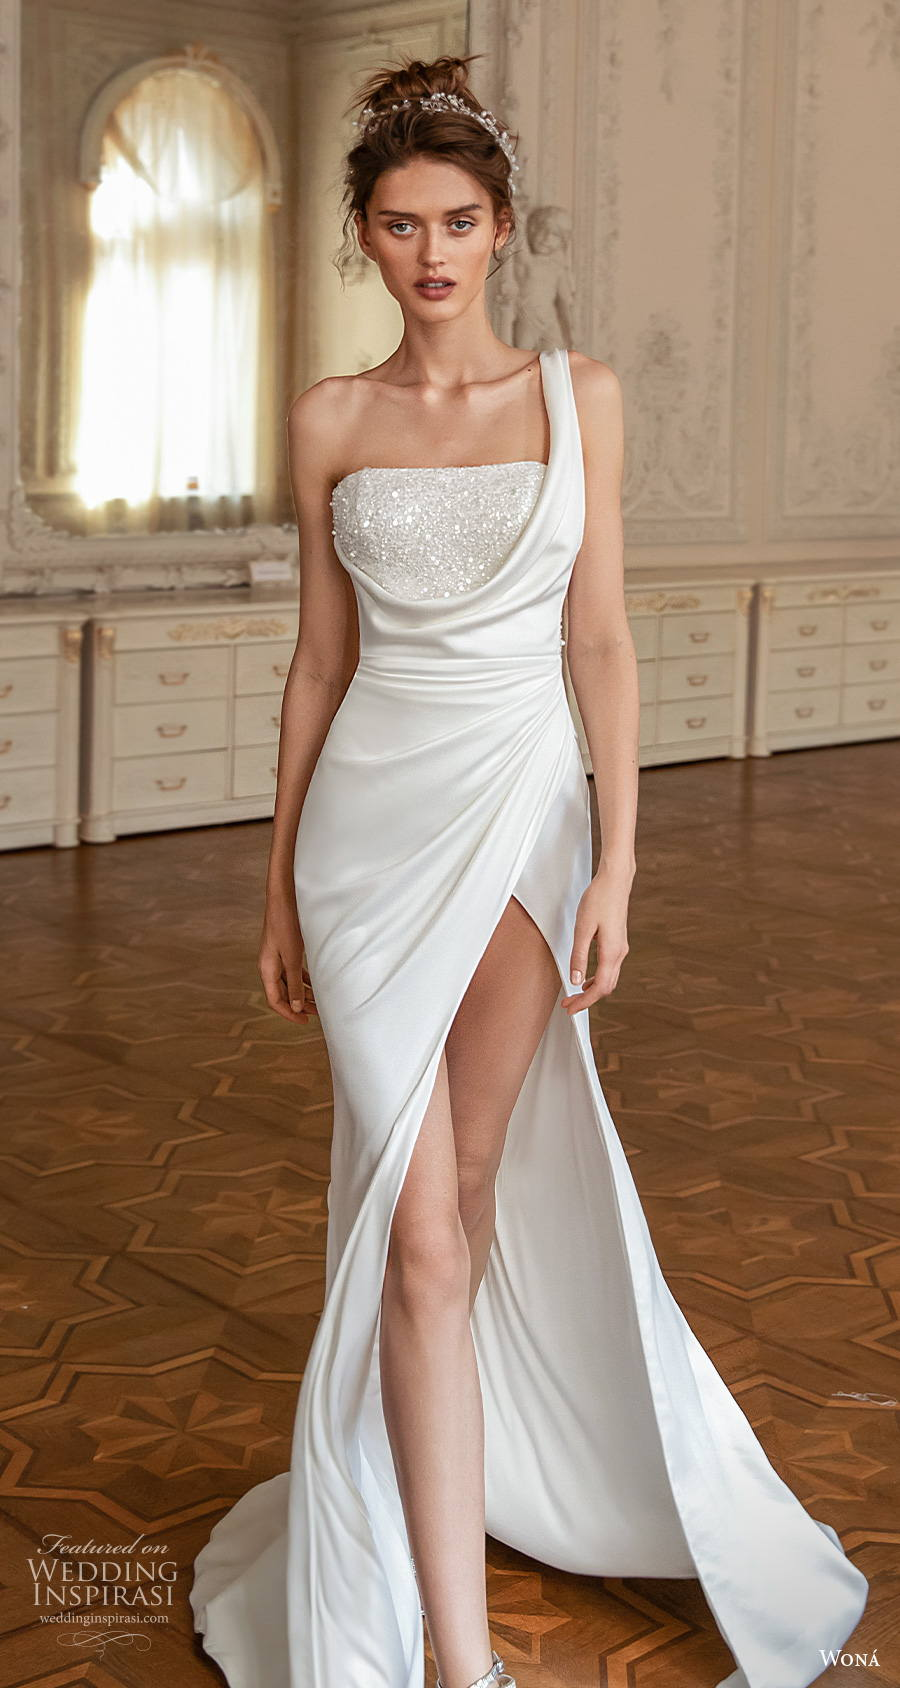 wona concept 2021 romance bridal one shoulder straight across heavily embellished bodice slit skirt modern elegant modified a  line wedding dress short train (16) mv